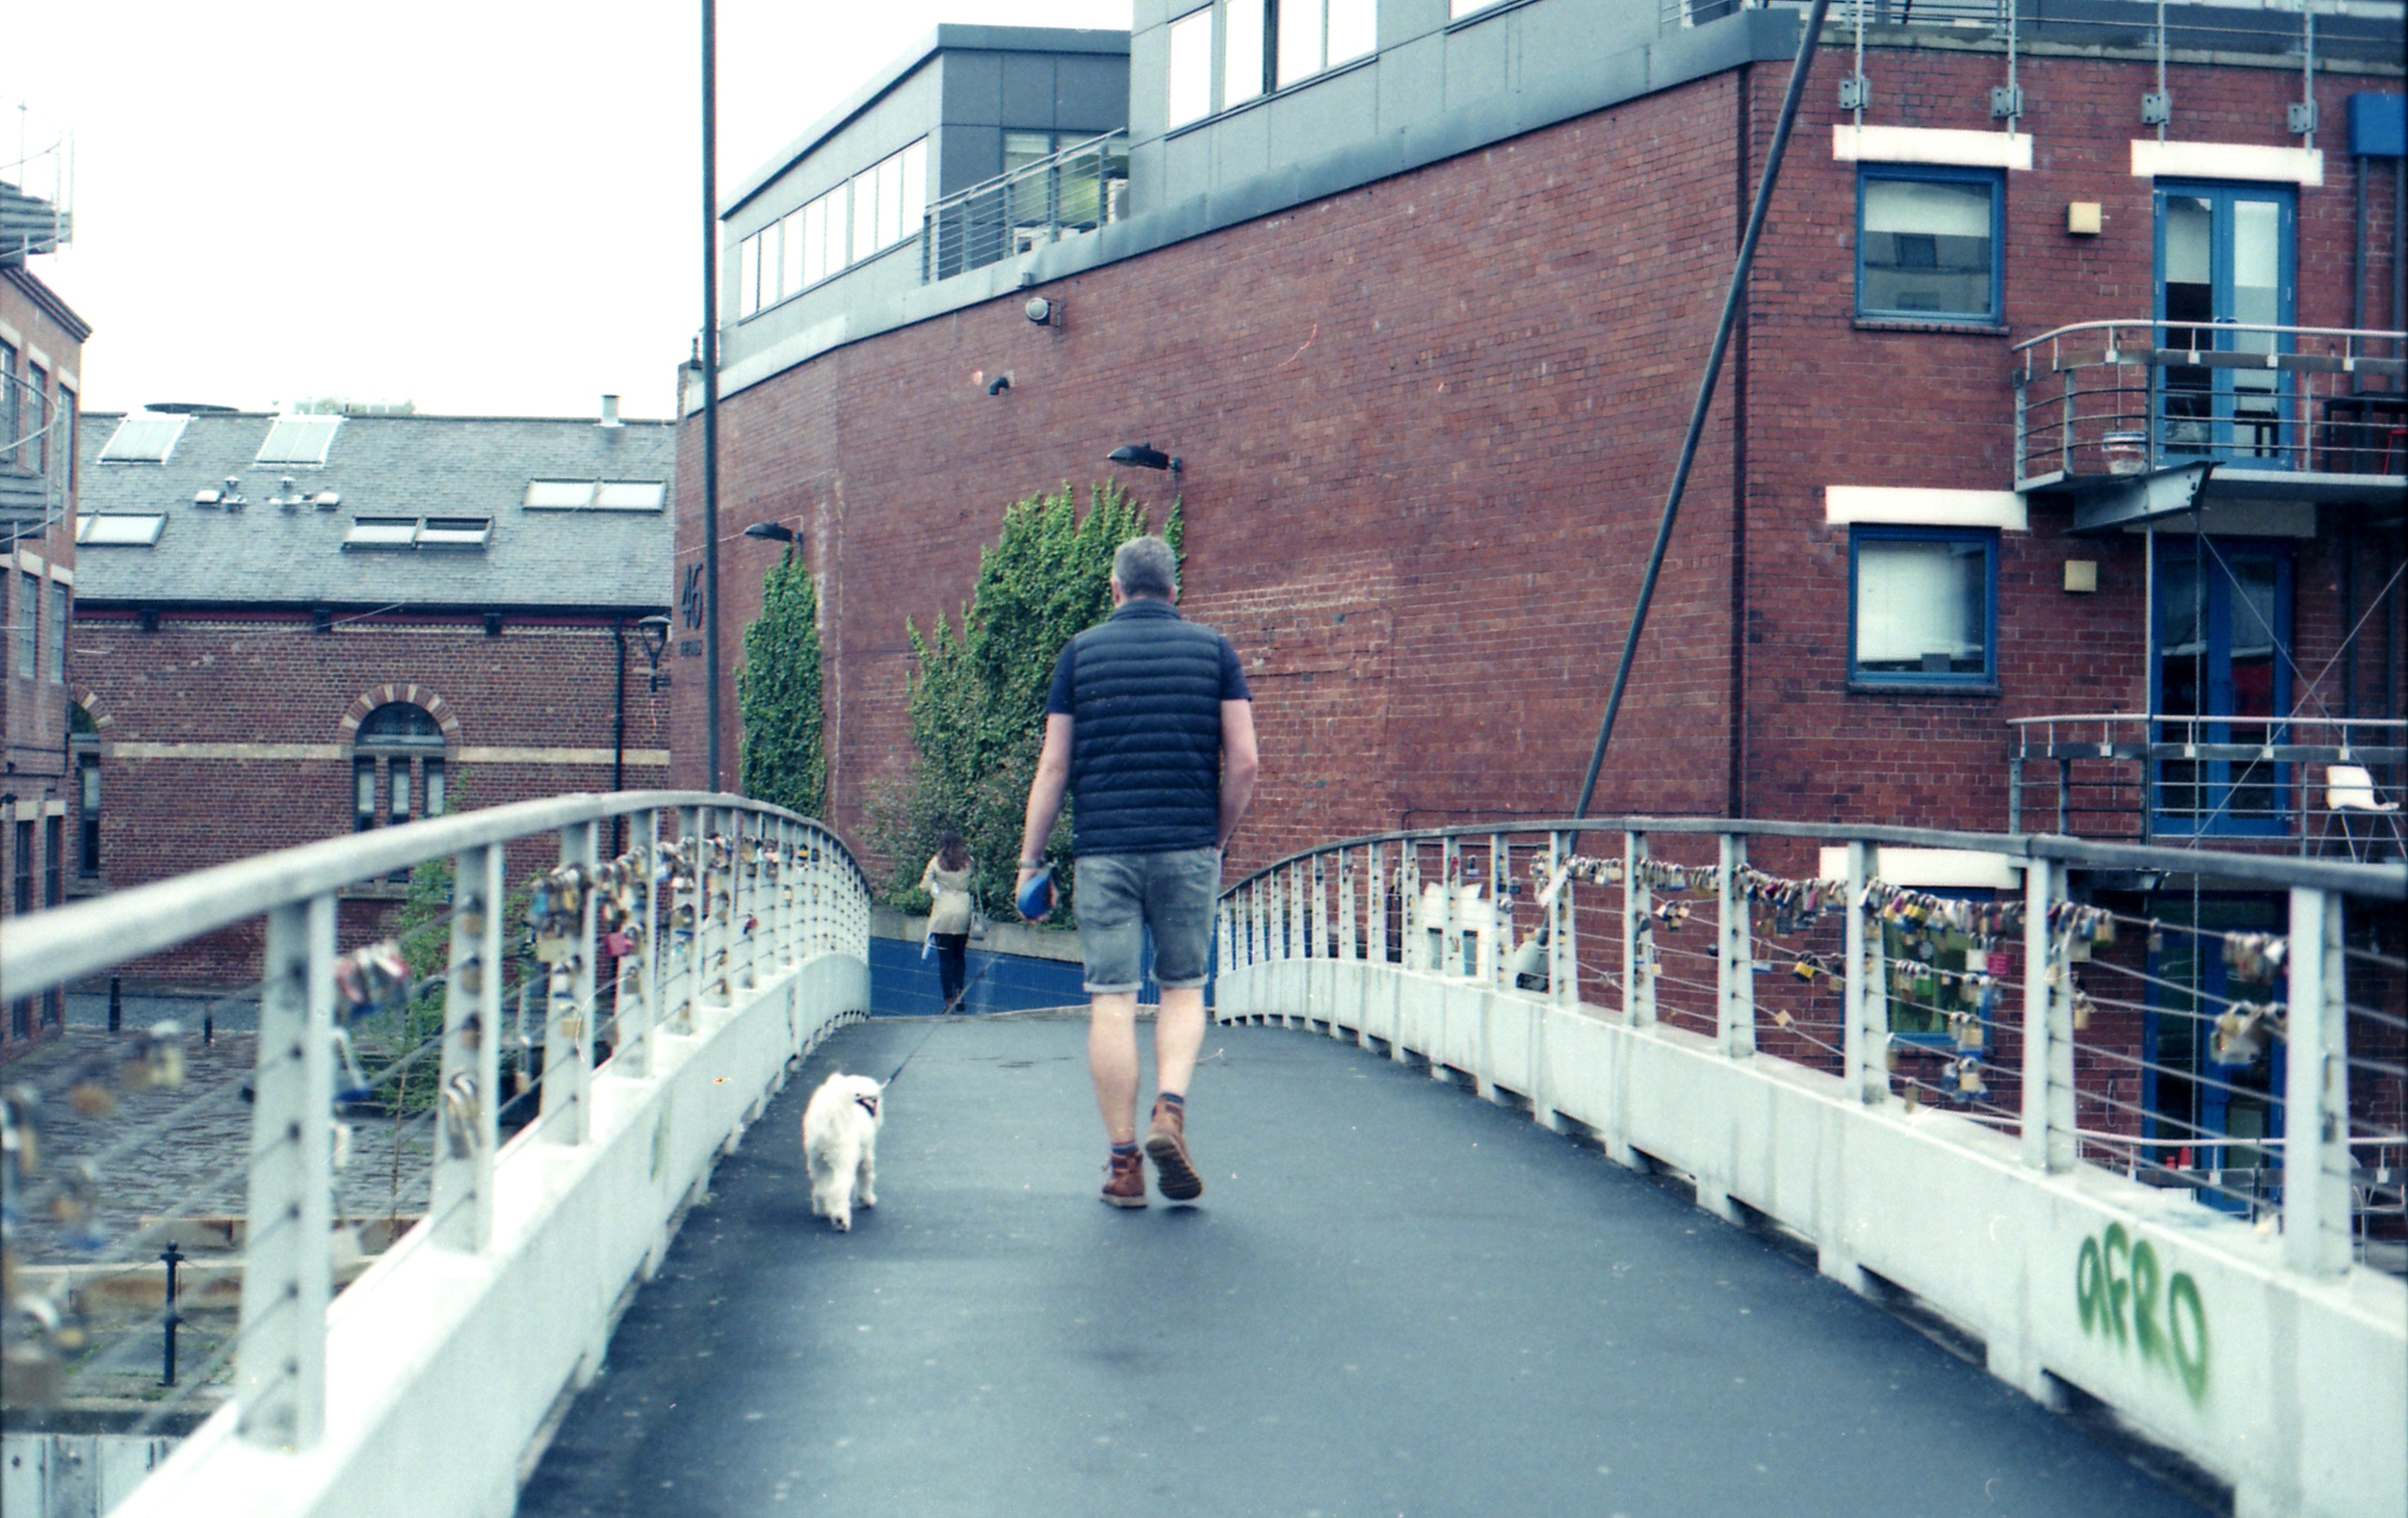 193/366 - I see this man with his dog every morning on my way to work. Maybe one day I'll be brave enough to take a proper photo of them but for now, this is as brave as I get ha.